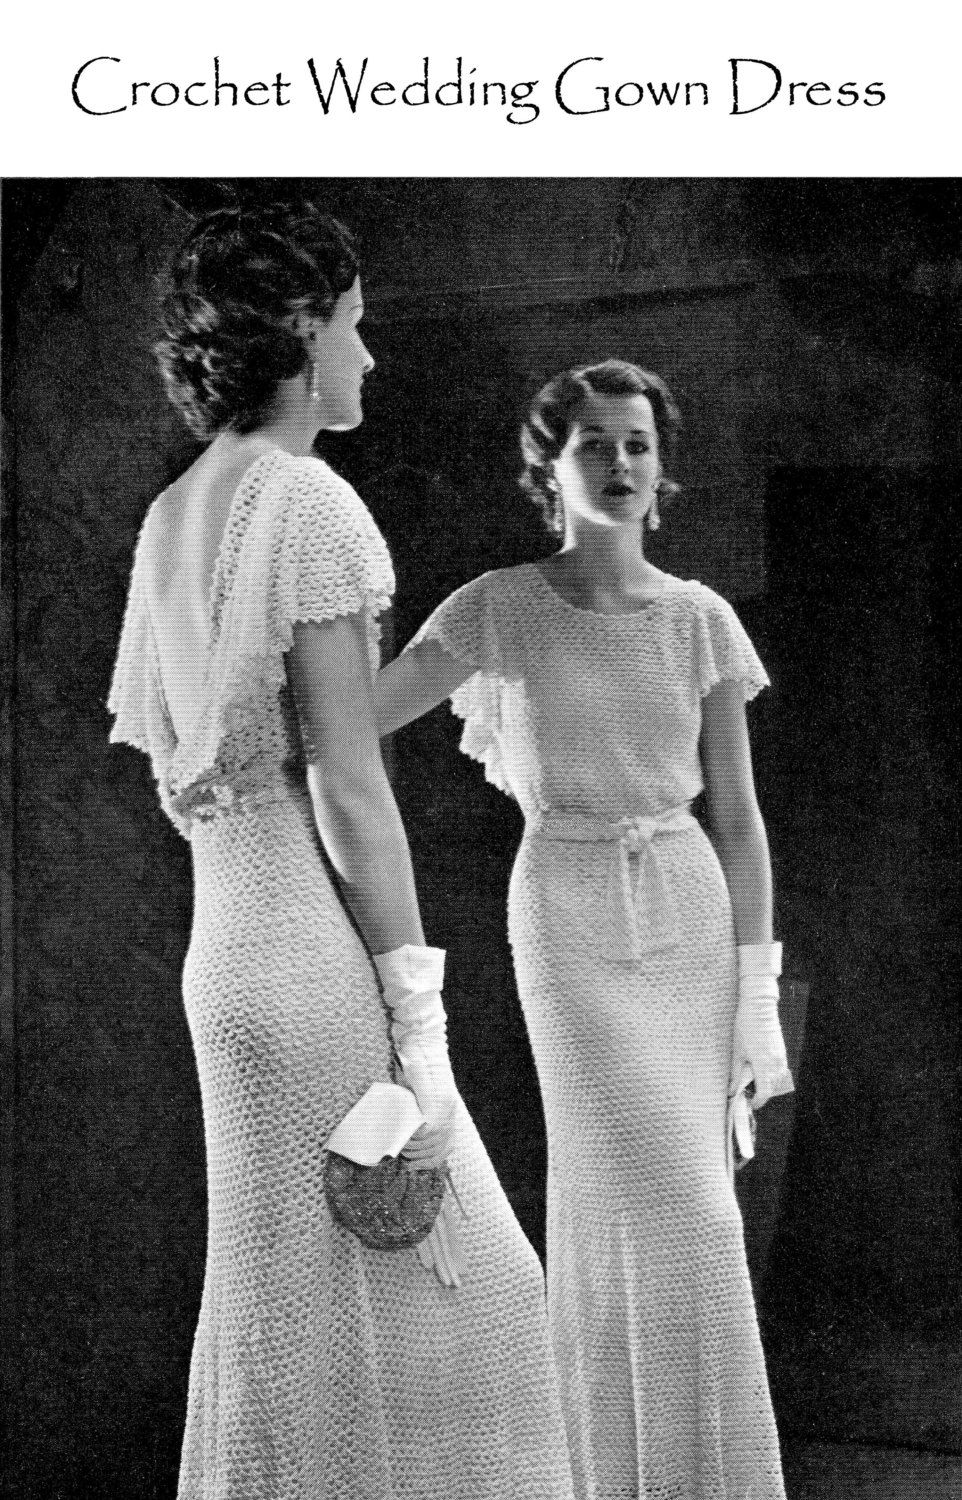 Iz You Re Pretty Handy With The Old Knitting Needles Aren T You Vintage Crochet Dresses Crochet Wedding Dresses Crochet Dress Pattern Free [ 1500 x 962 Pixel ]